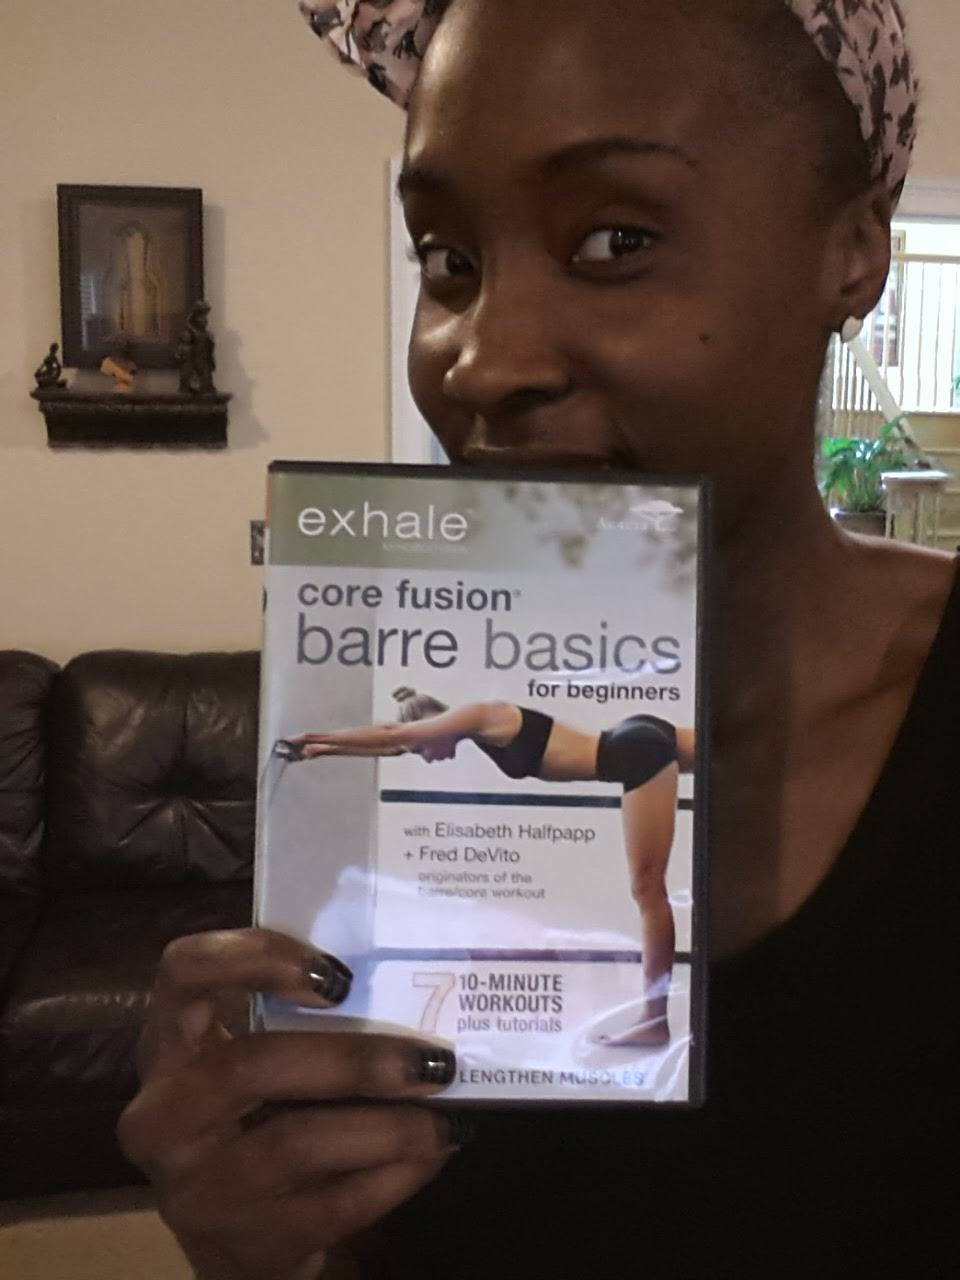 Core Fusion Barre Basics for Beginners